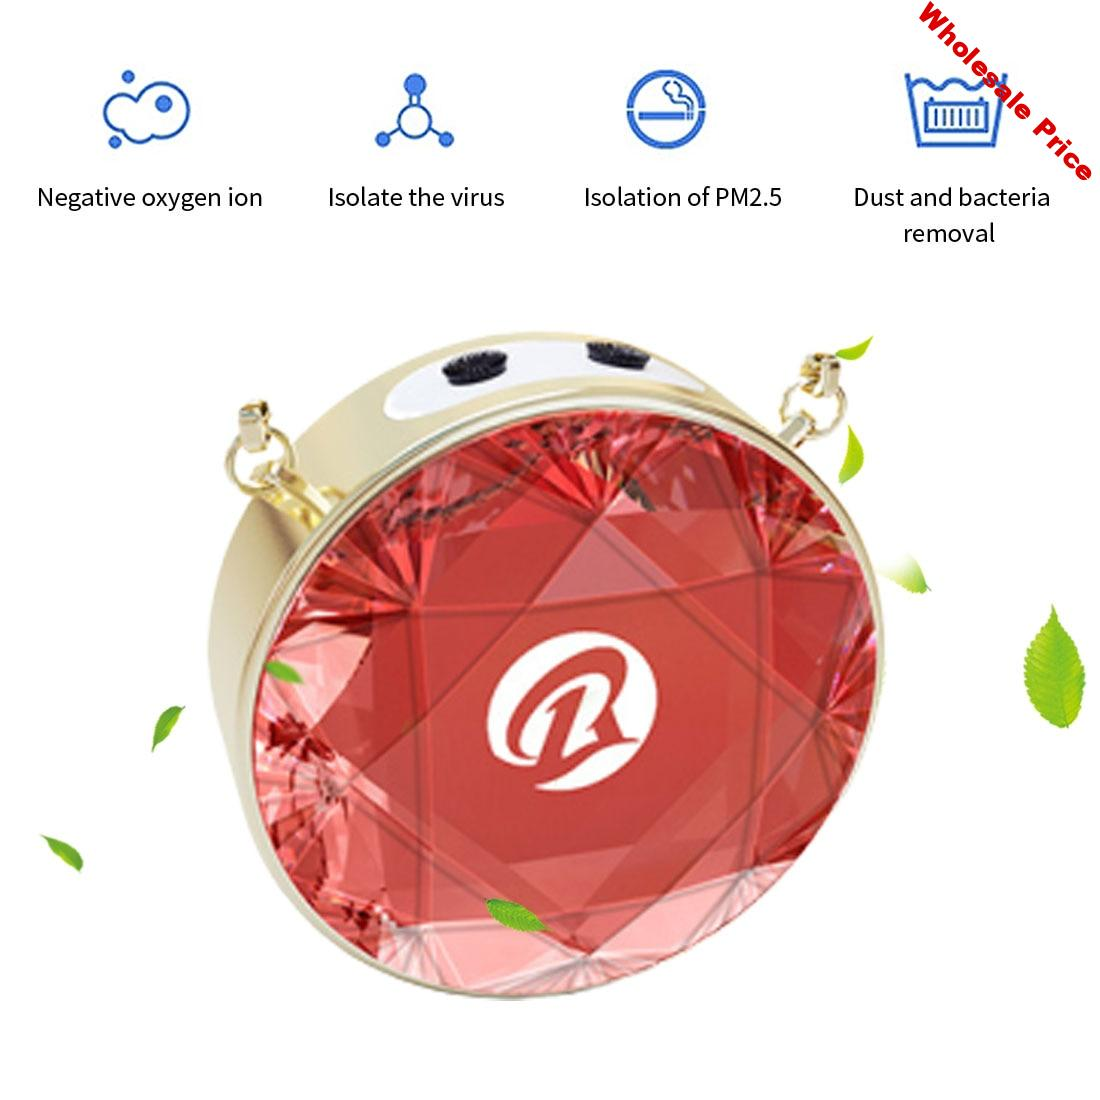 Mini Air Purifier Personal Wearable Necklace Air Freshener Ionizer Negative Ion Generator Portable Air Freshener Home Outdoor